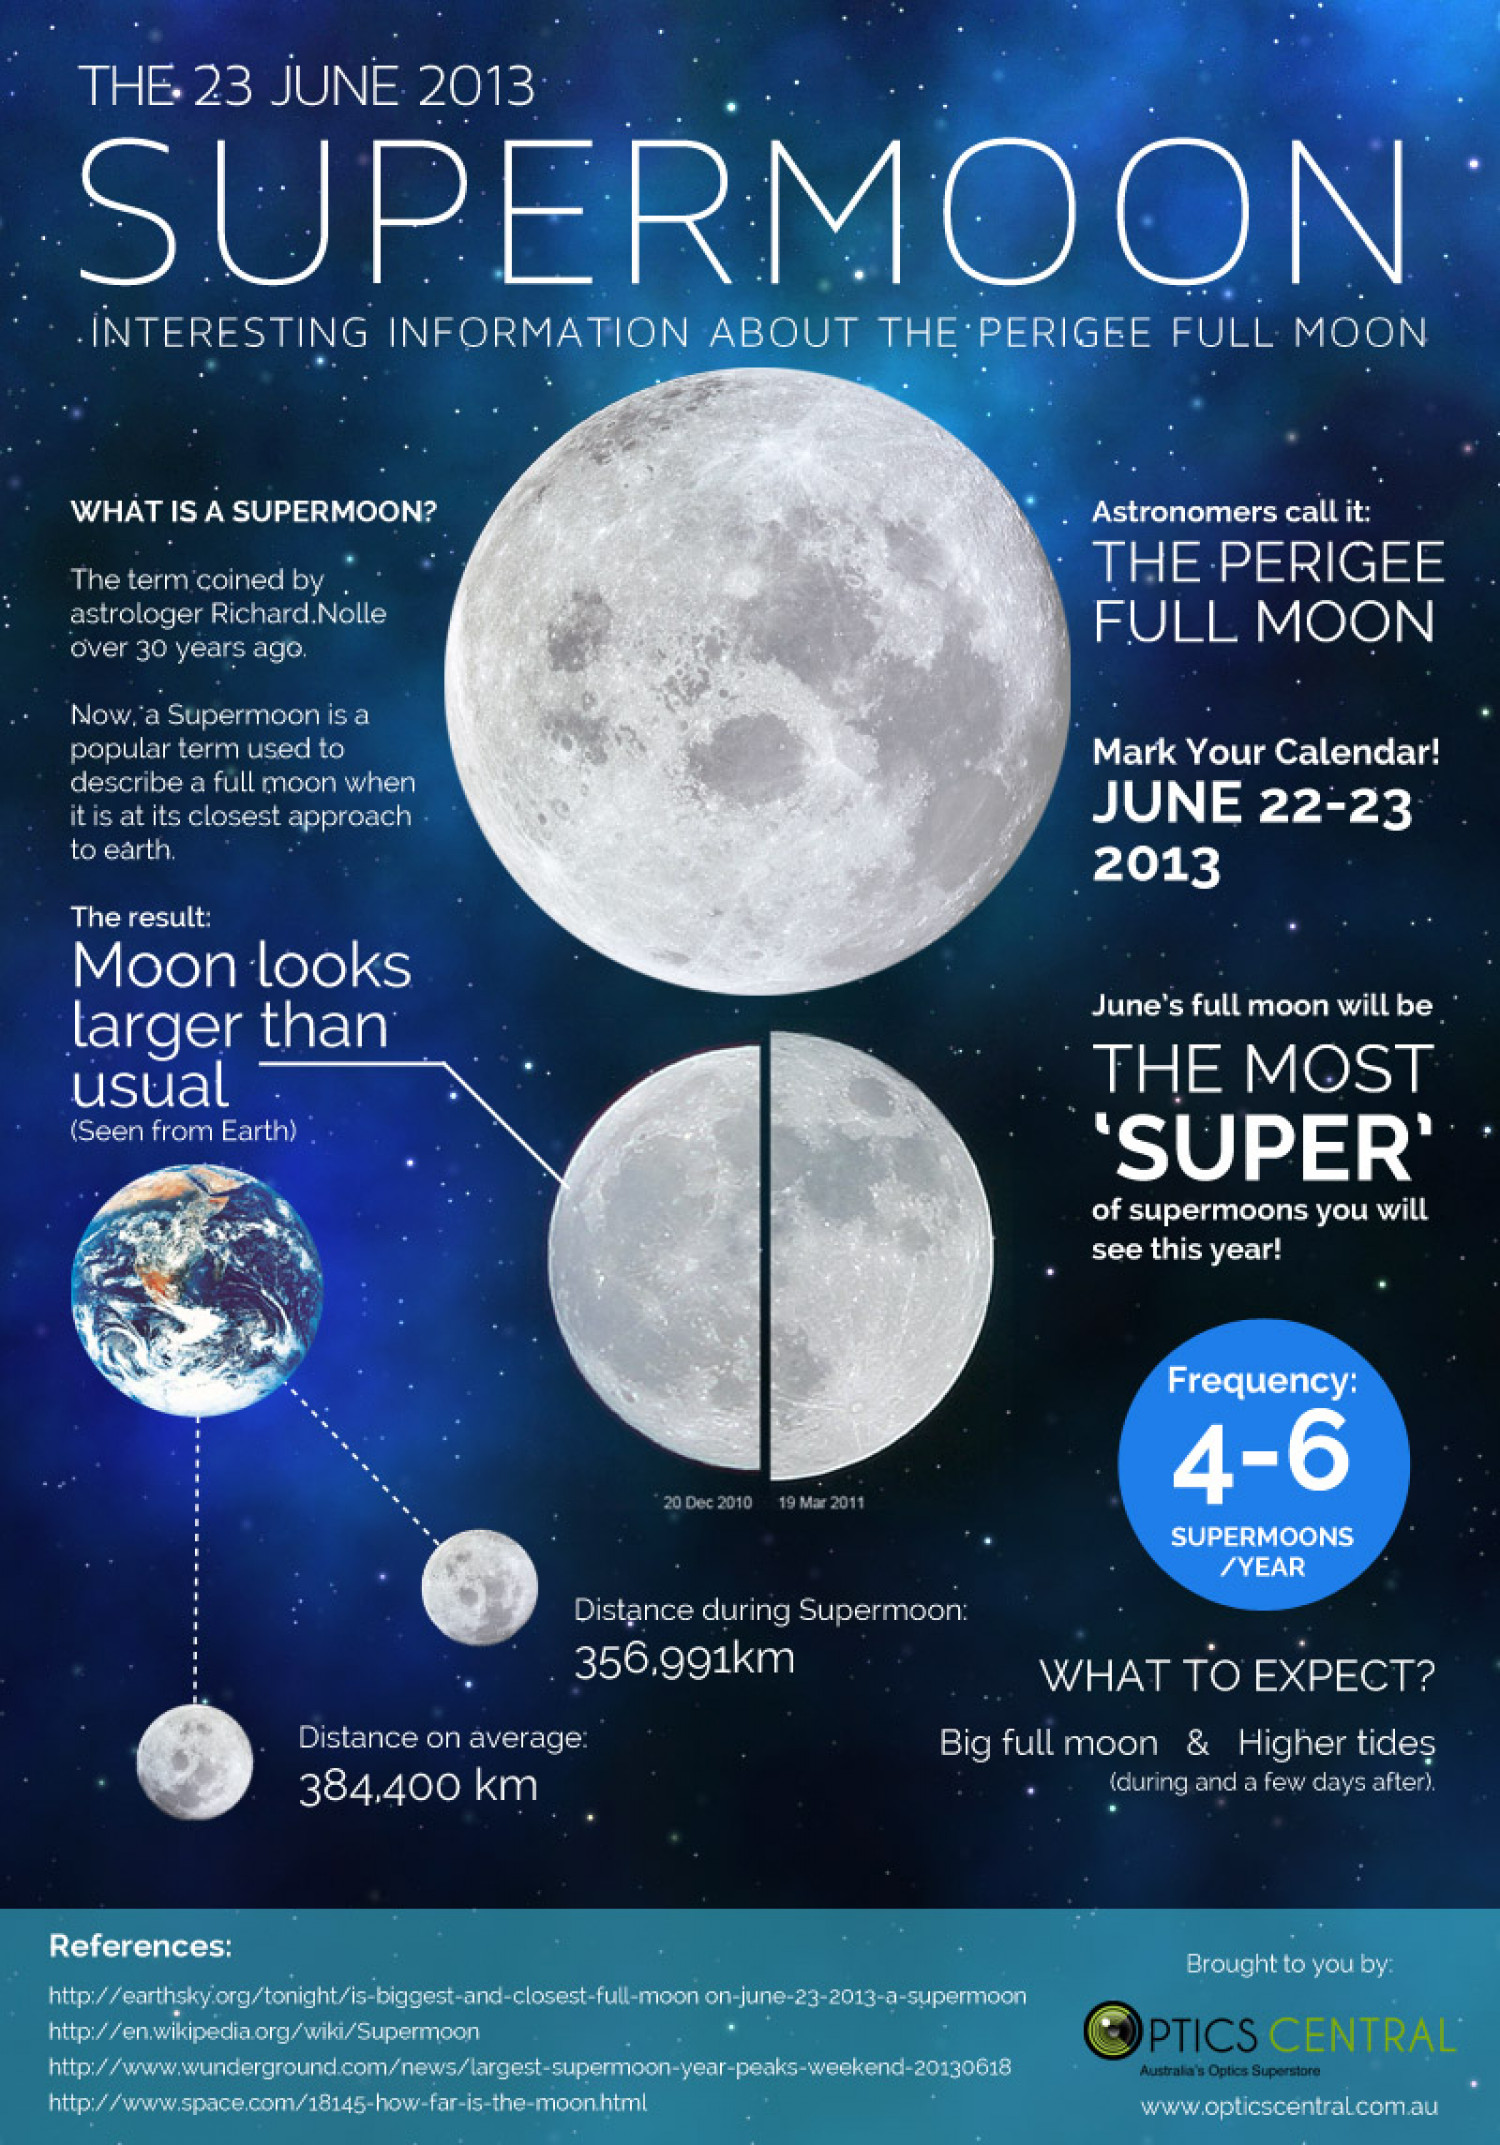 The 23 June 2013 Supermoon Infographic